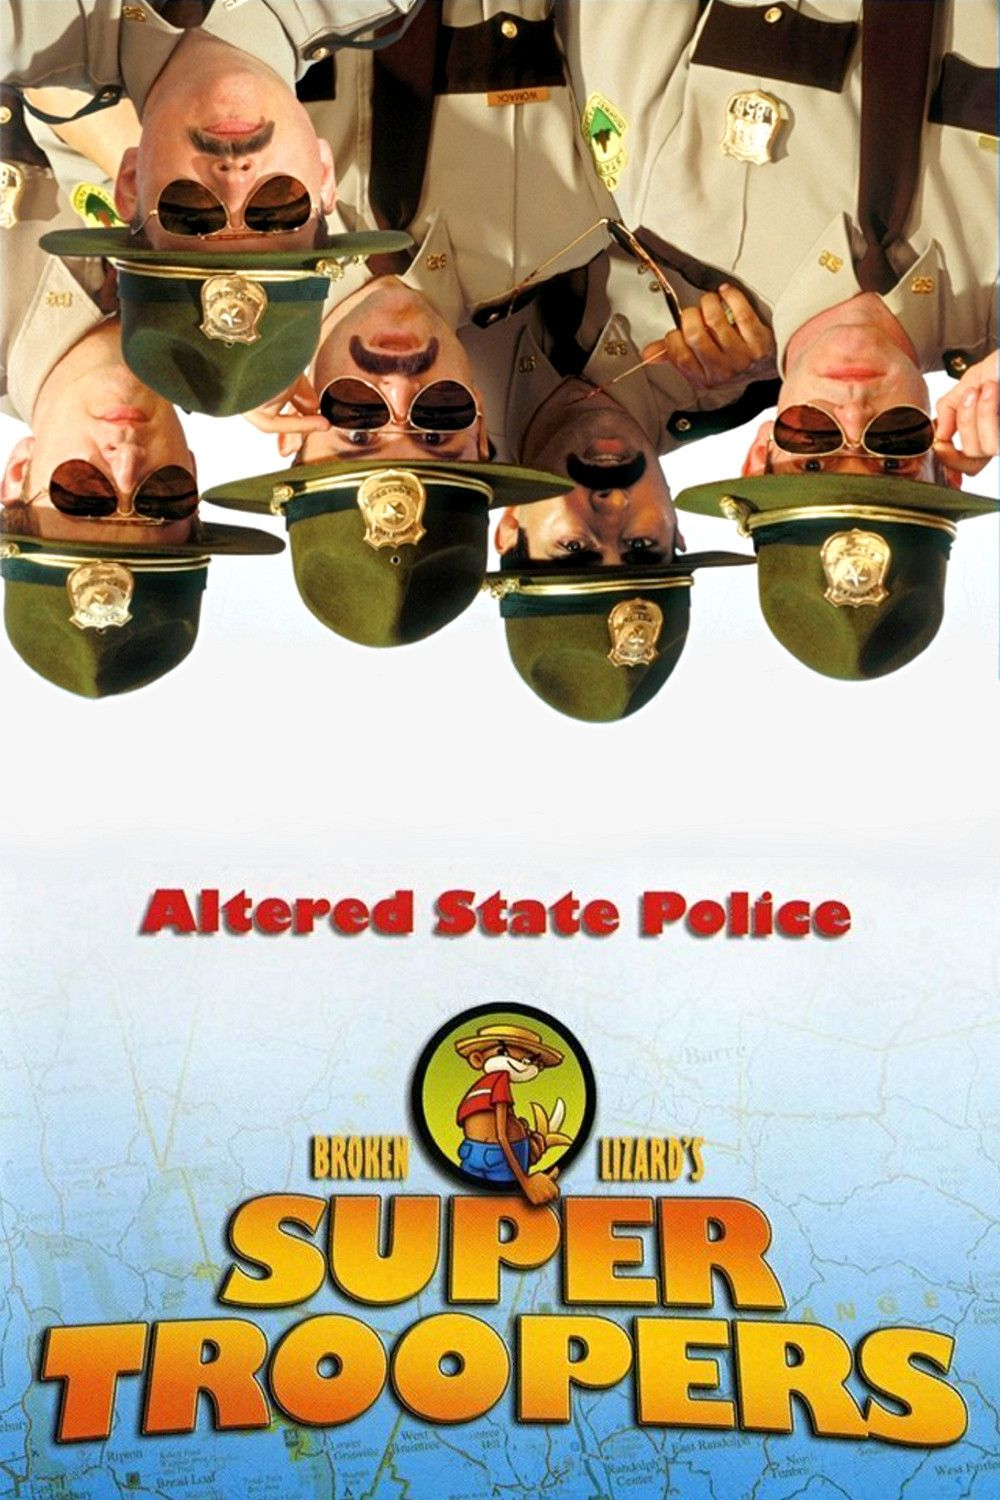 Super Troopers Movie Poster Super Troopers Trooper Full Movies Online Free